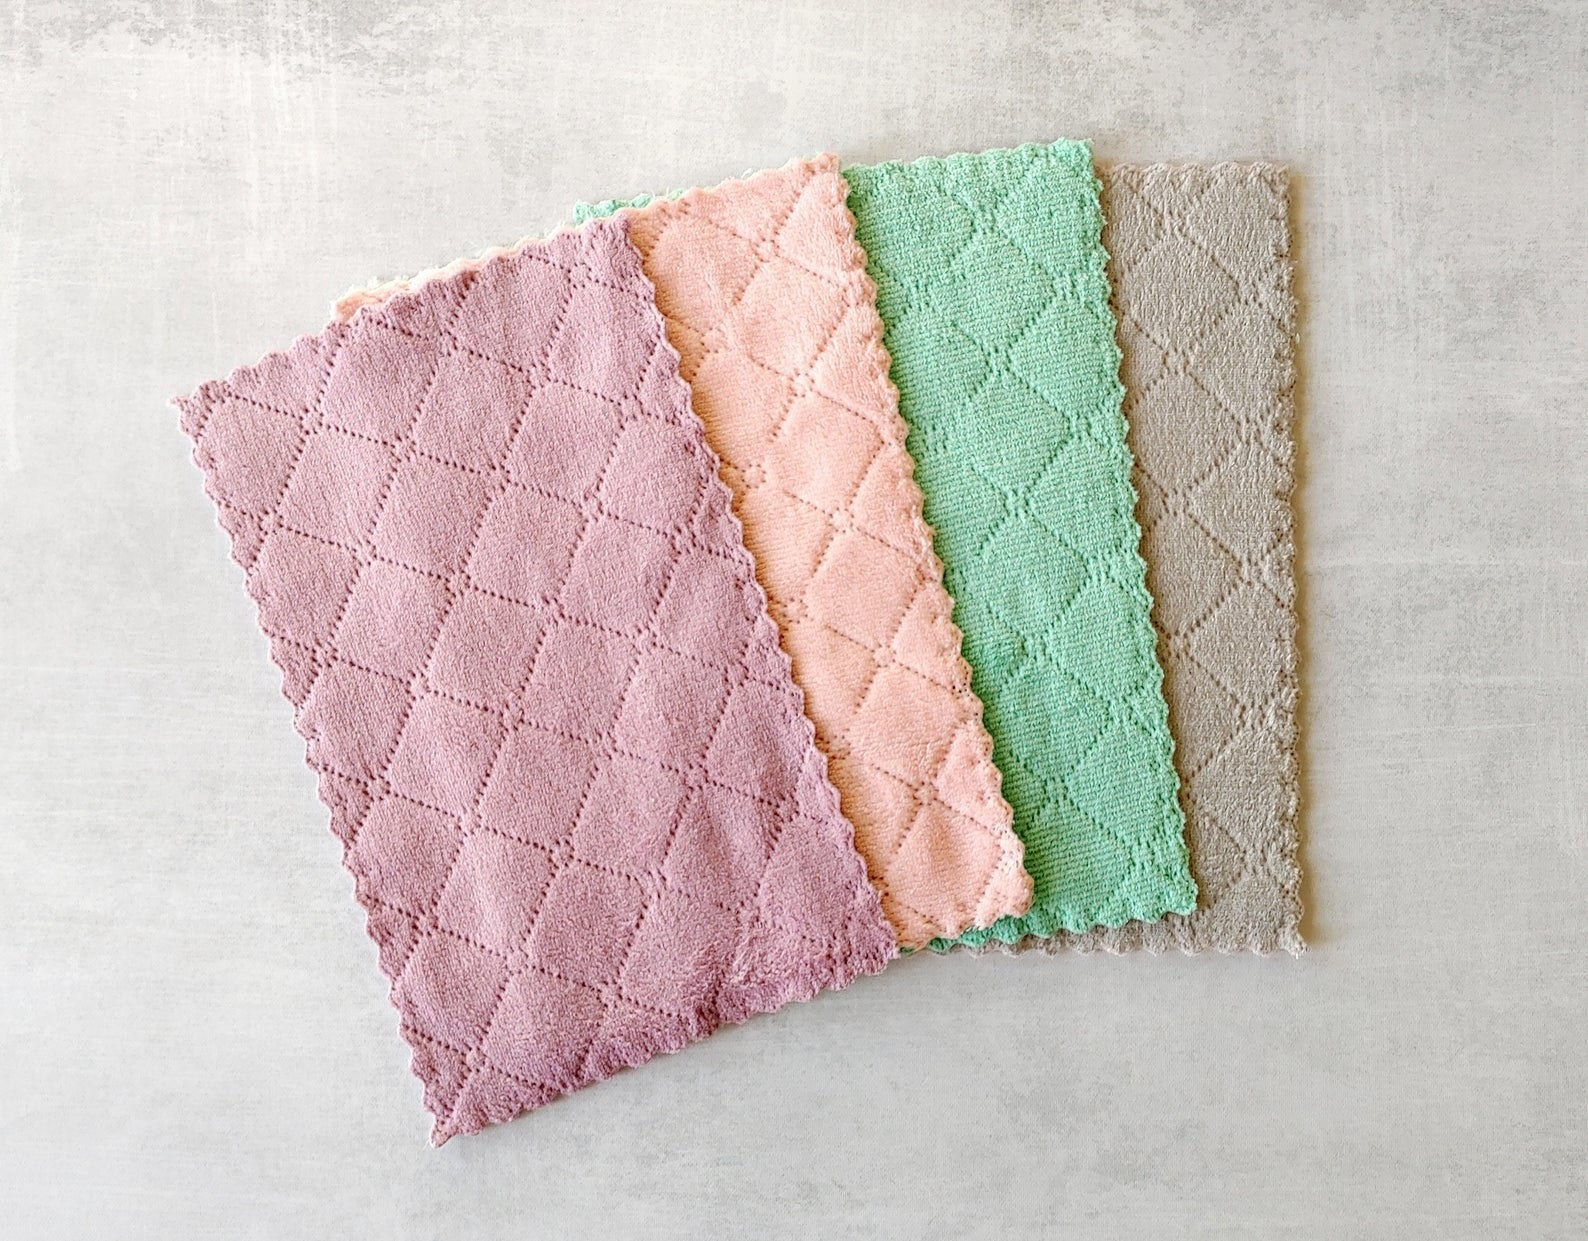 Four textured microfiber cloths in pink, light orange, green, and grey